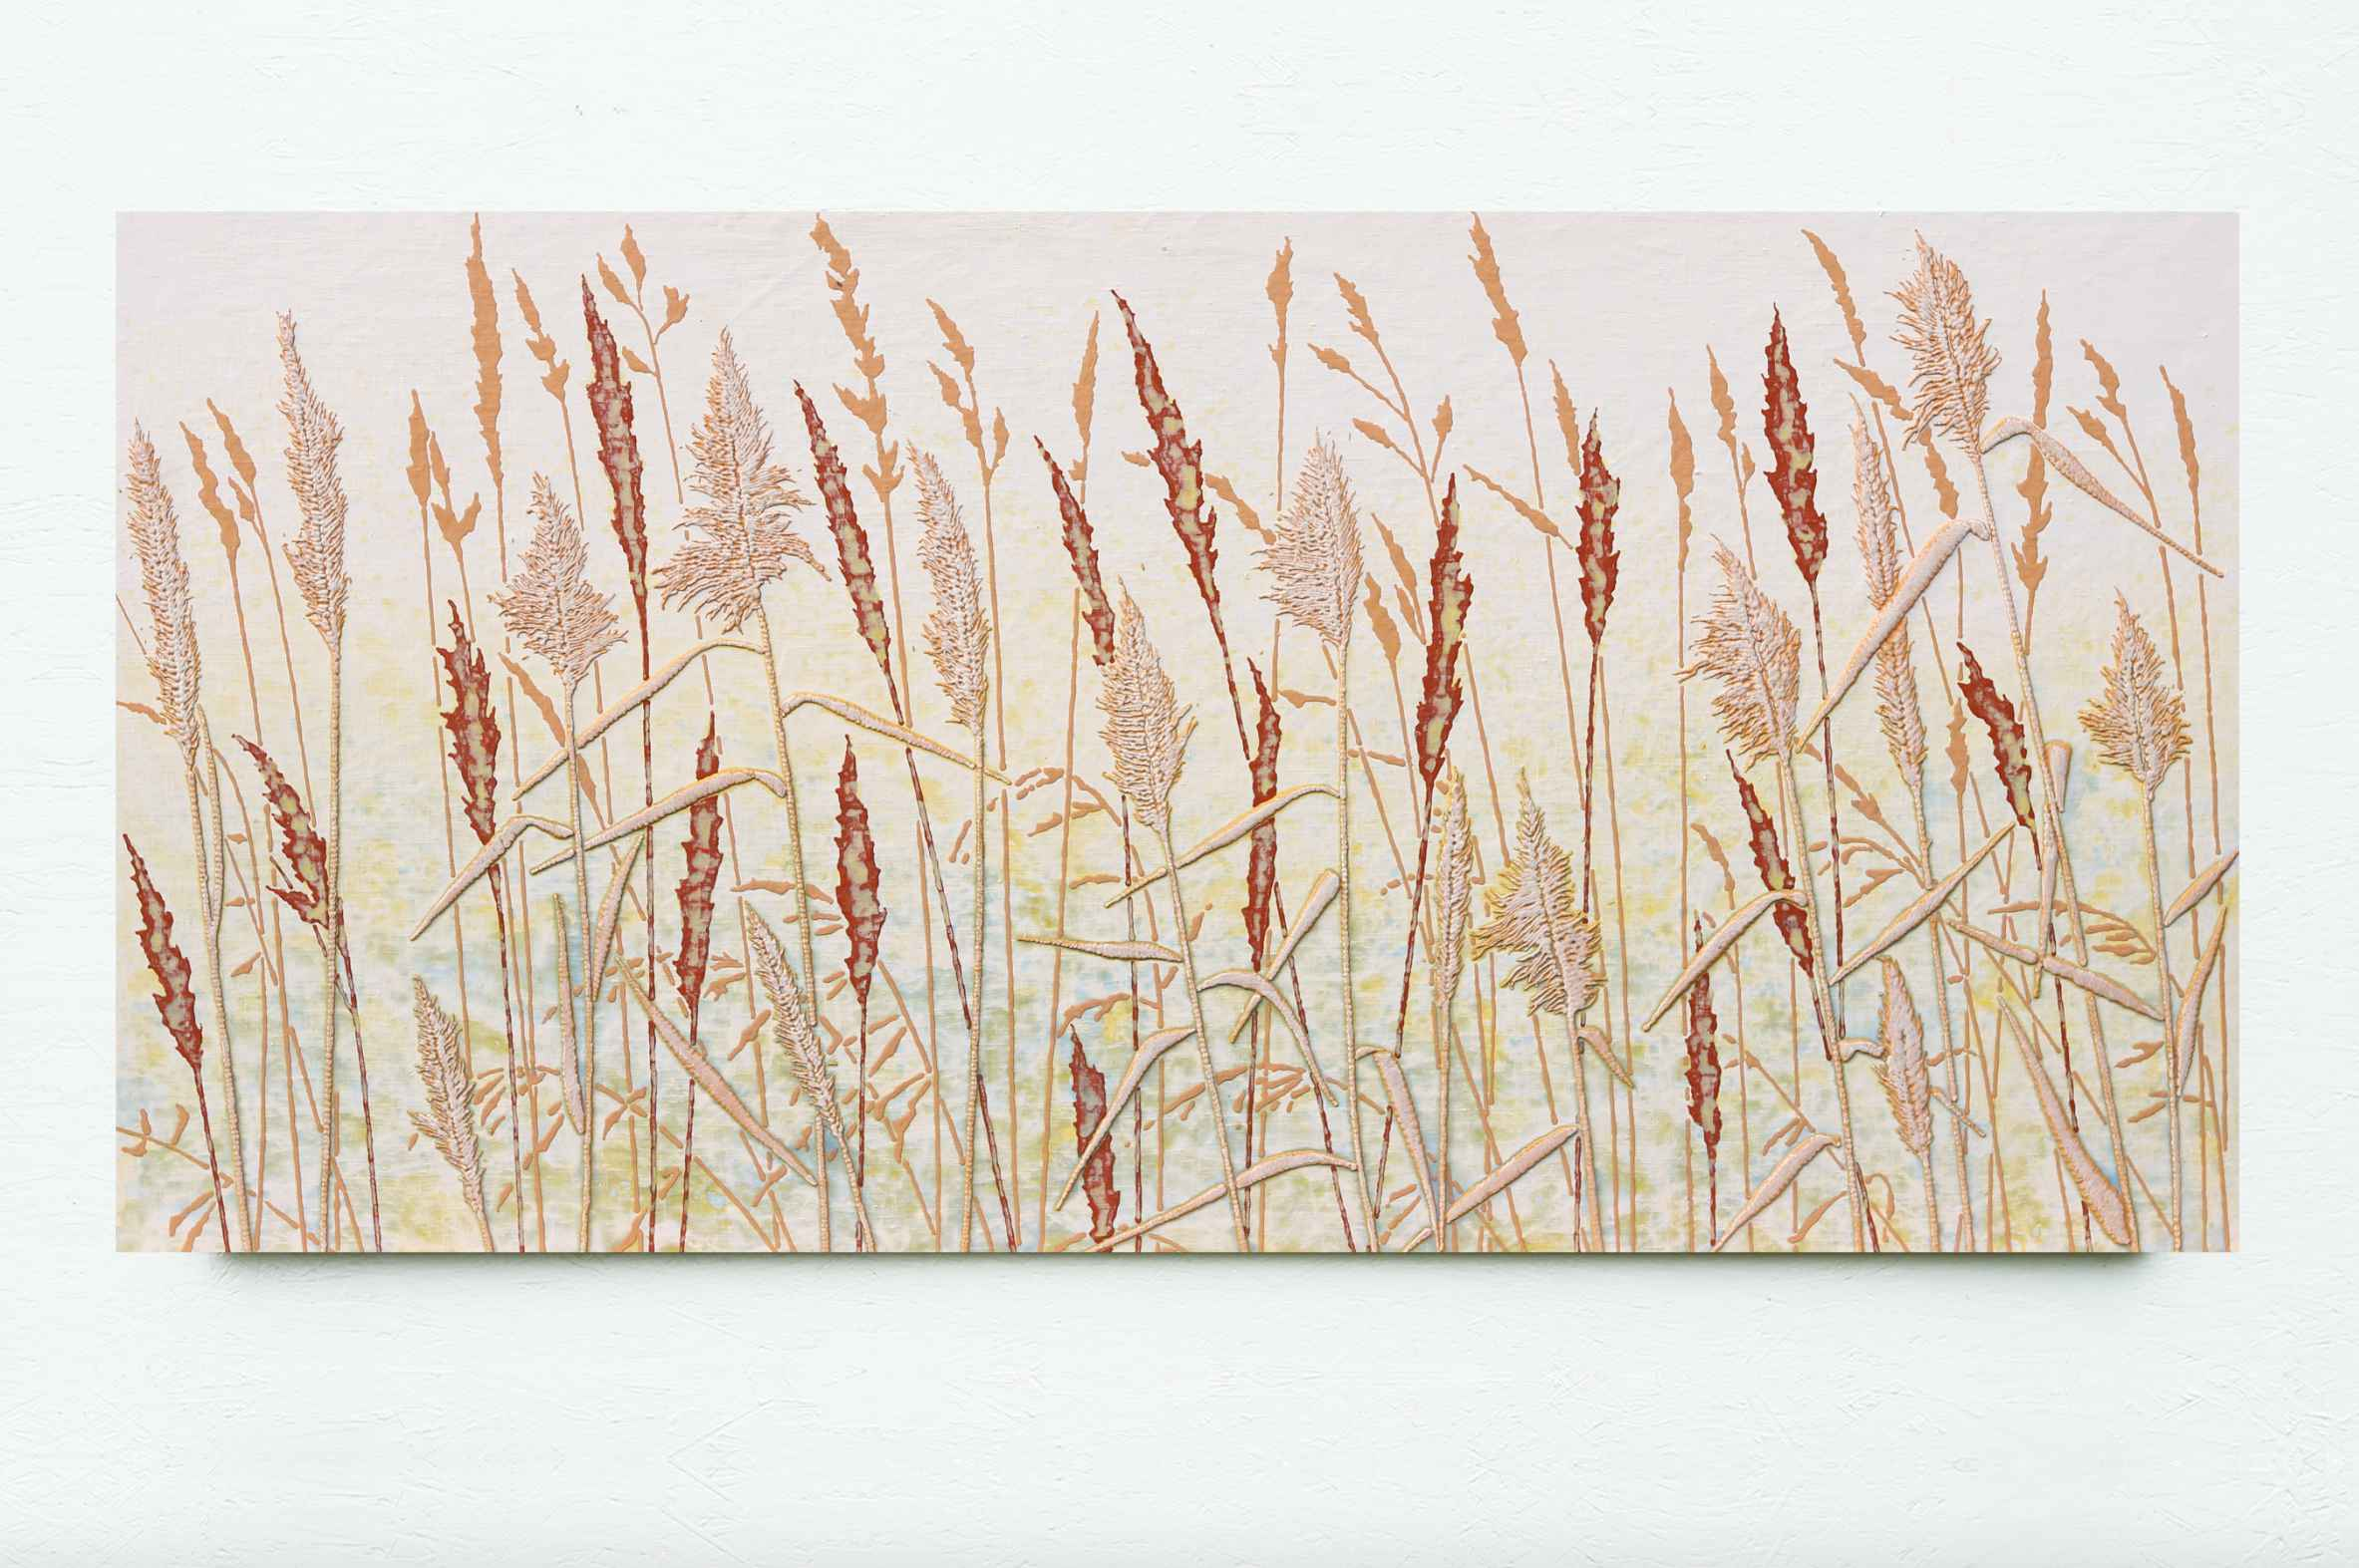 The Glory of Growth . 180 x 80 cm